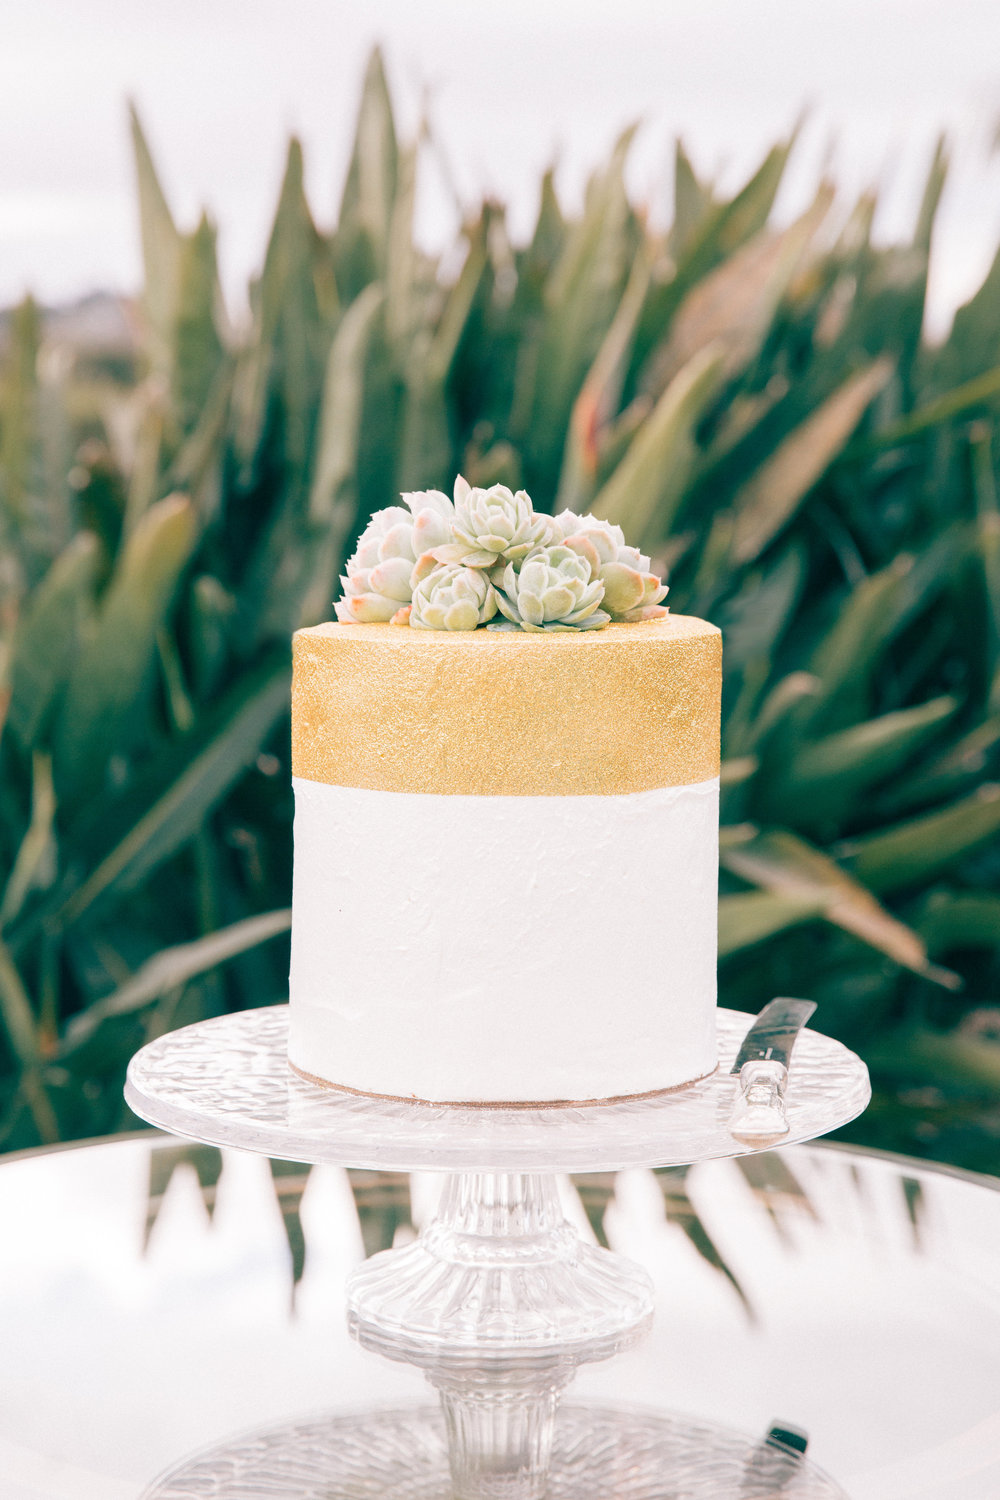 Modern style wedding cake | Modern bride inspiration | photography by Tinted | Dress from Astra Bridal | www.borrowedandblue.kiwi